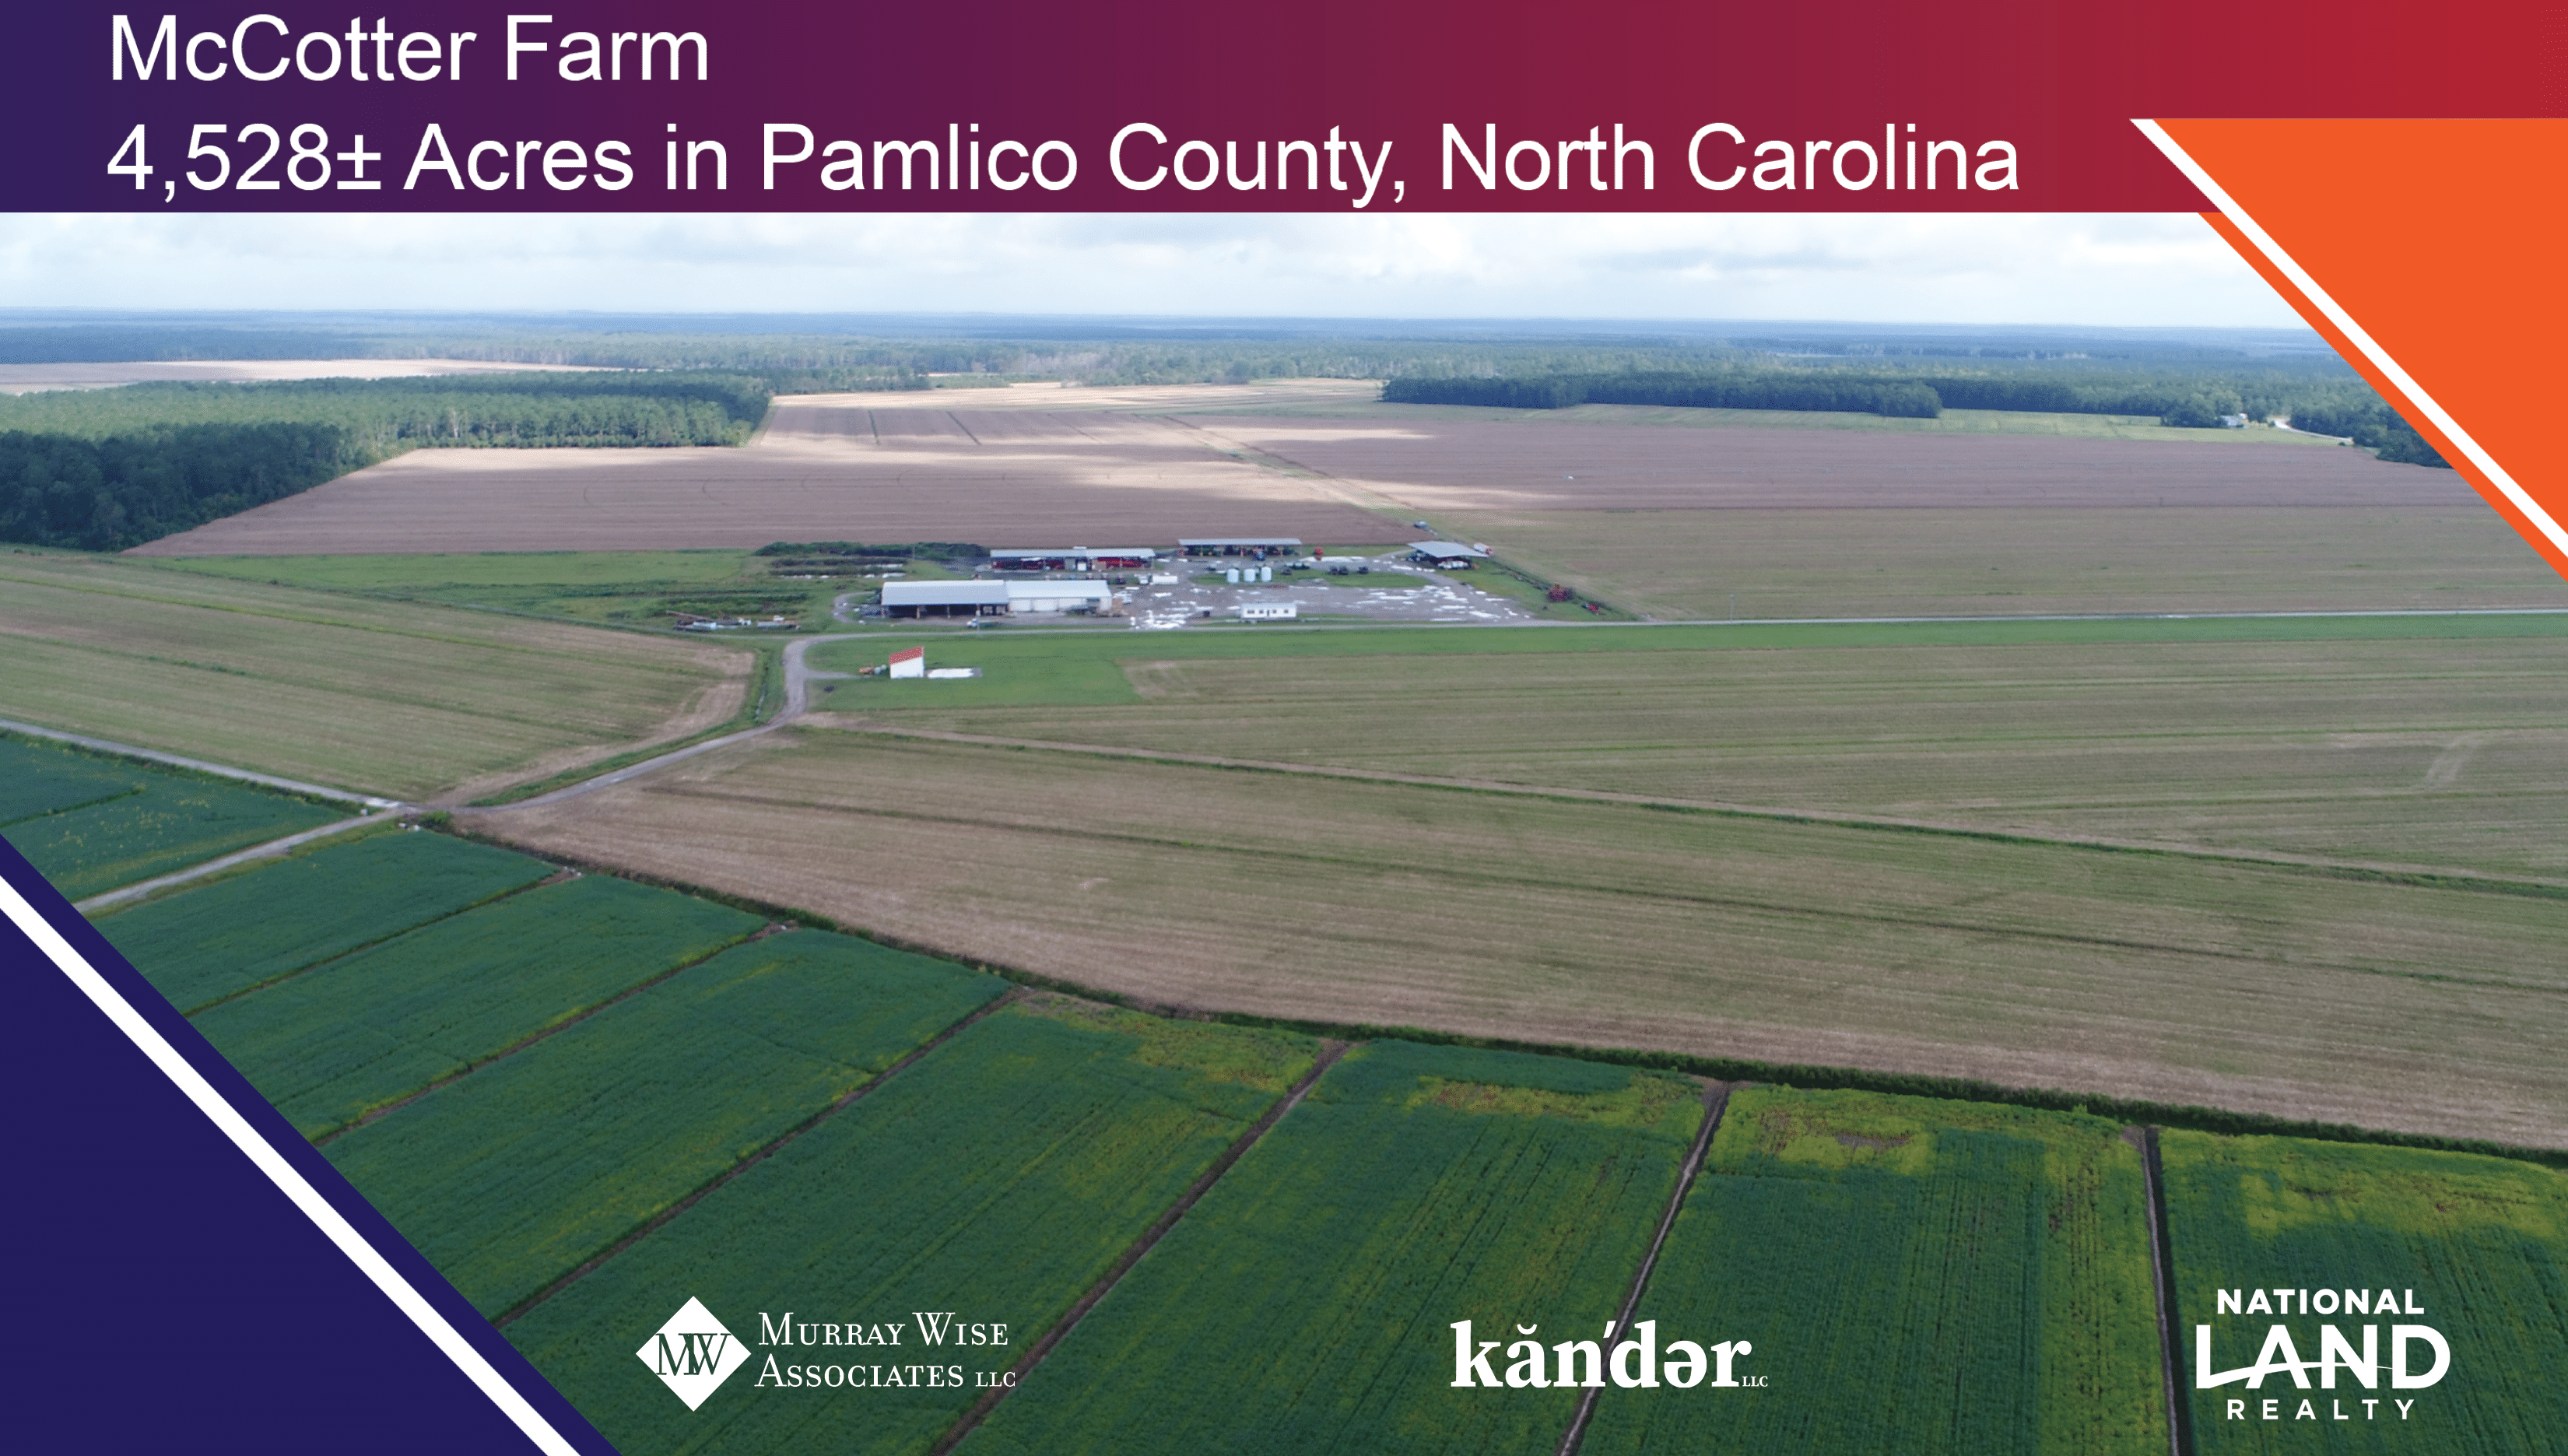 Acquisition Opportunity4,528± Acres - Pamlico County, NC